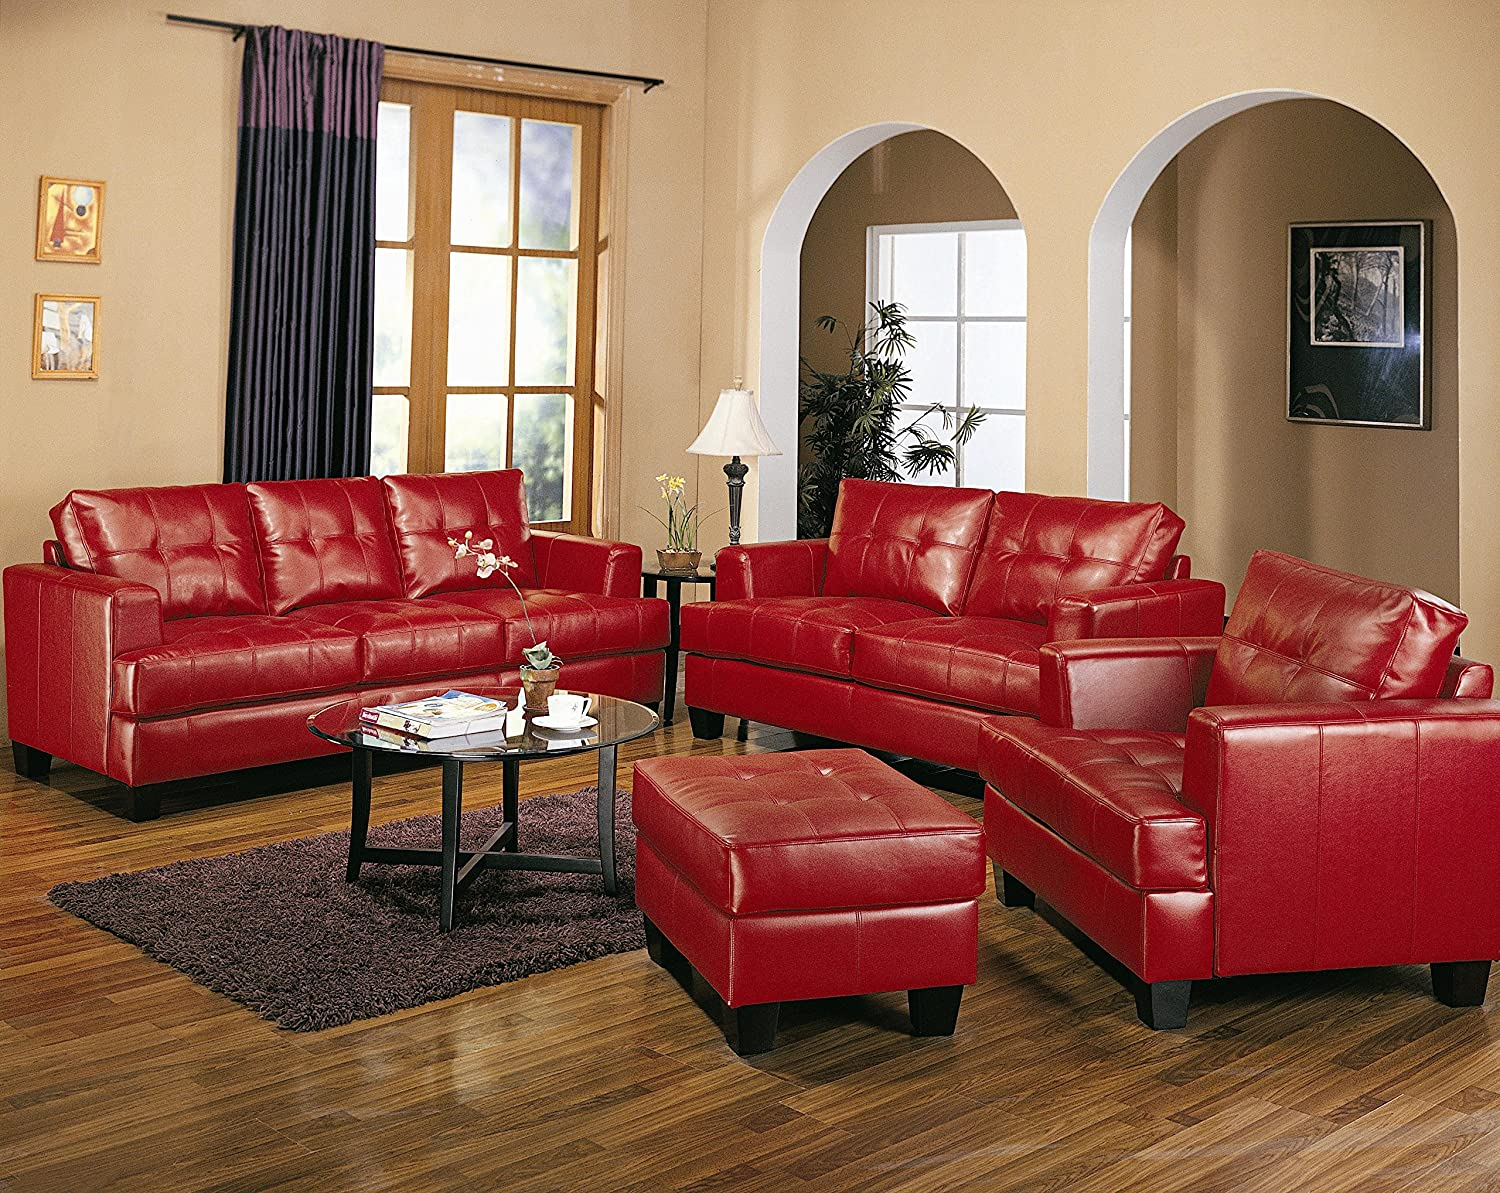 Amazon com coaster home furnishings samuel living room set with sofa love seat chair and ottoman in red premium bonded leather kitchen dining